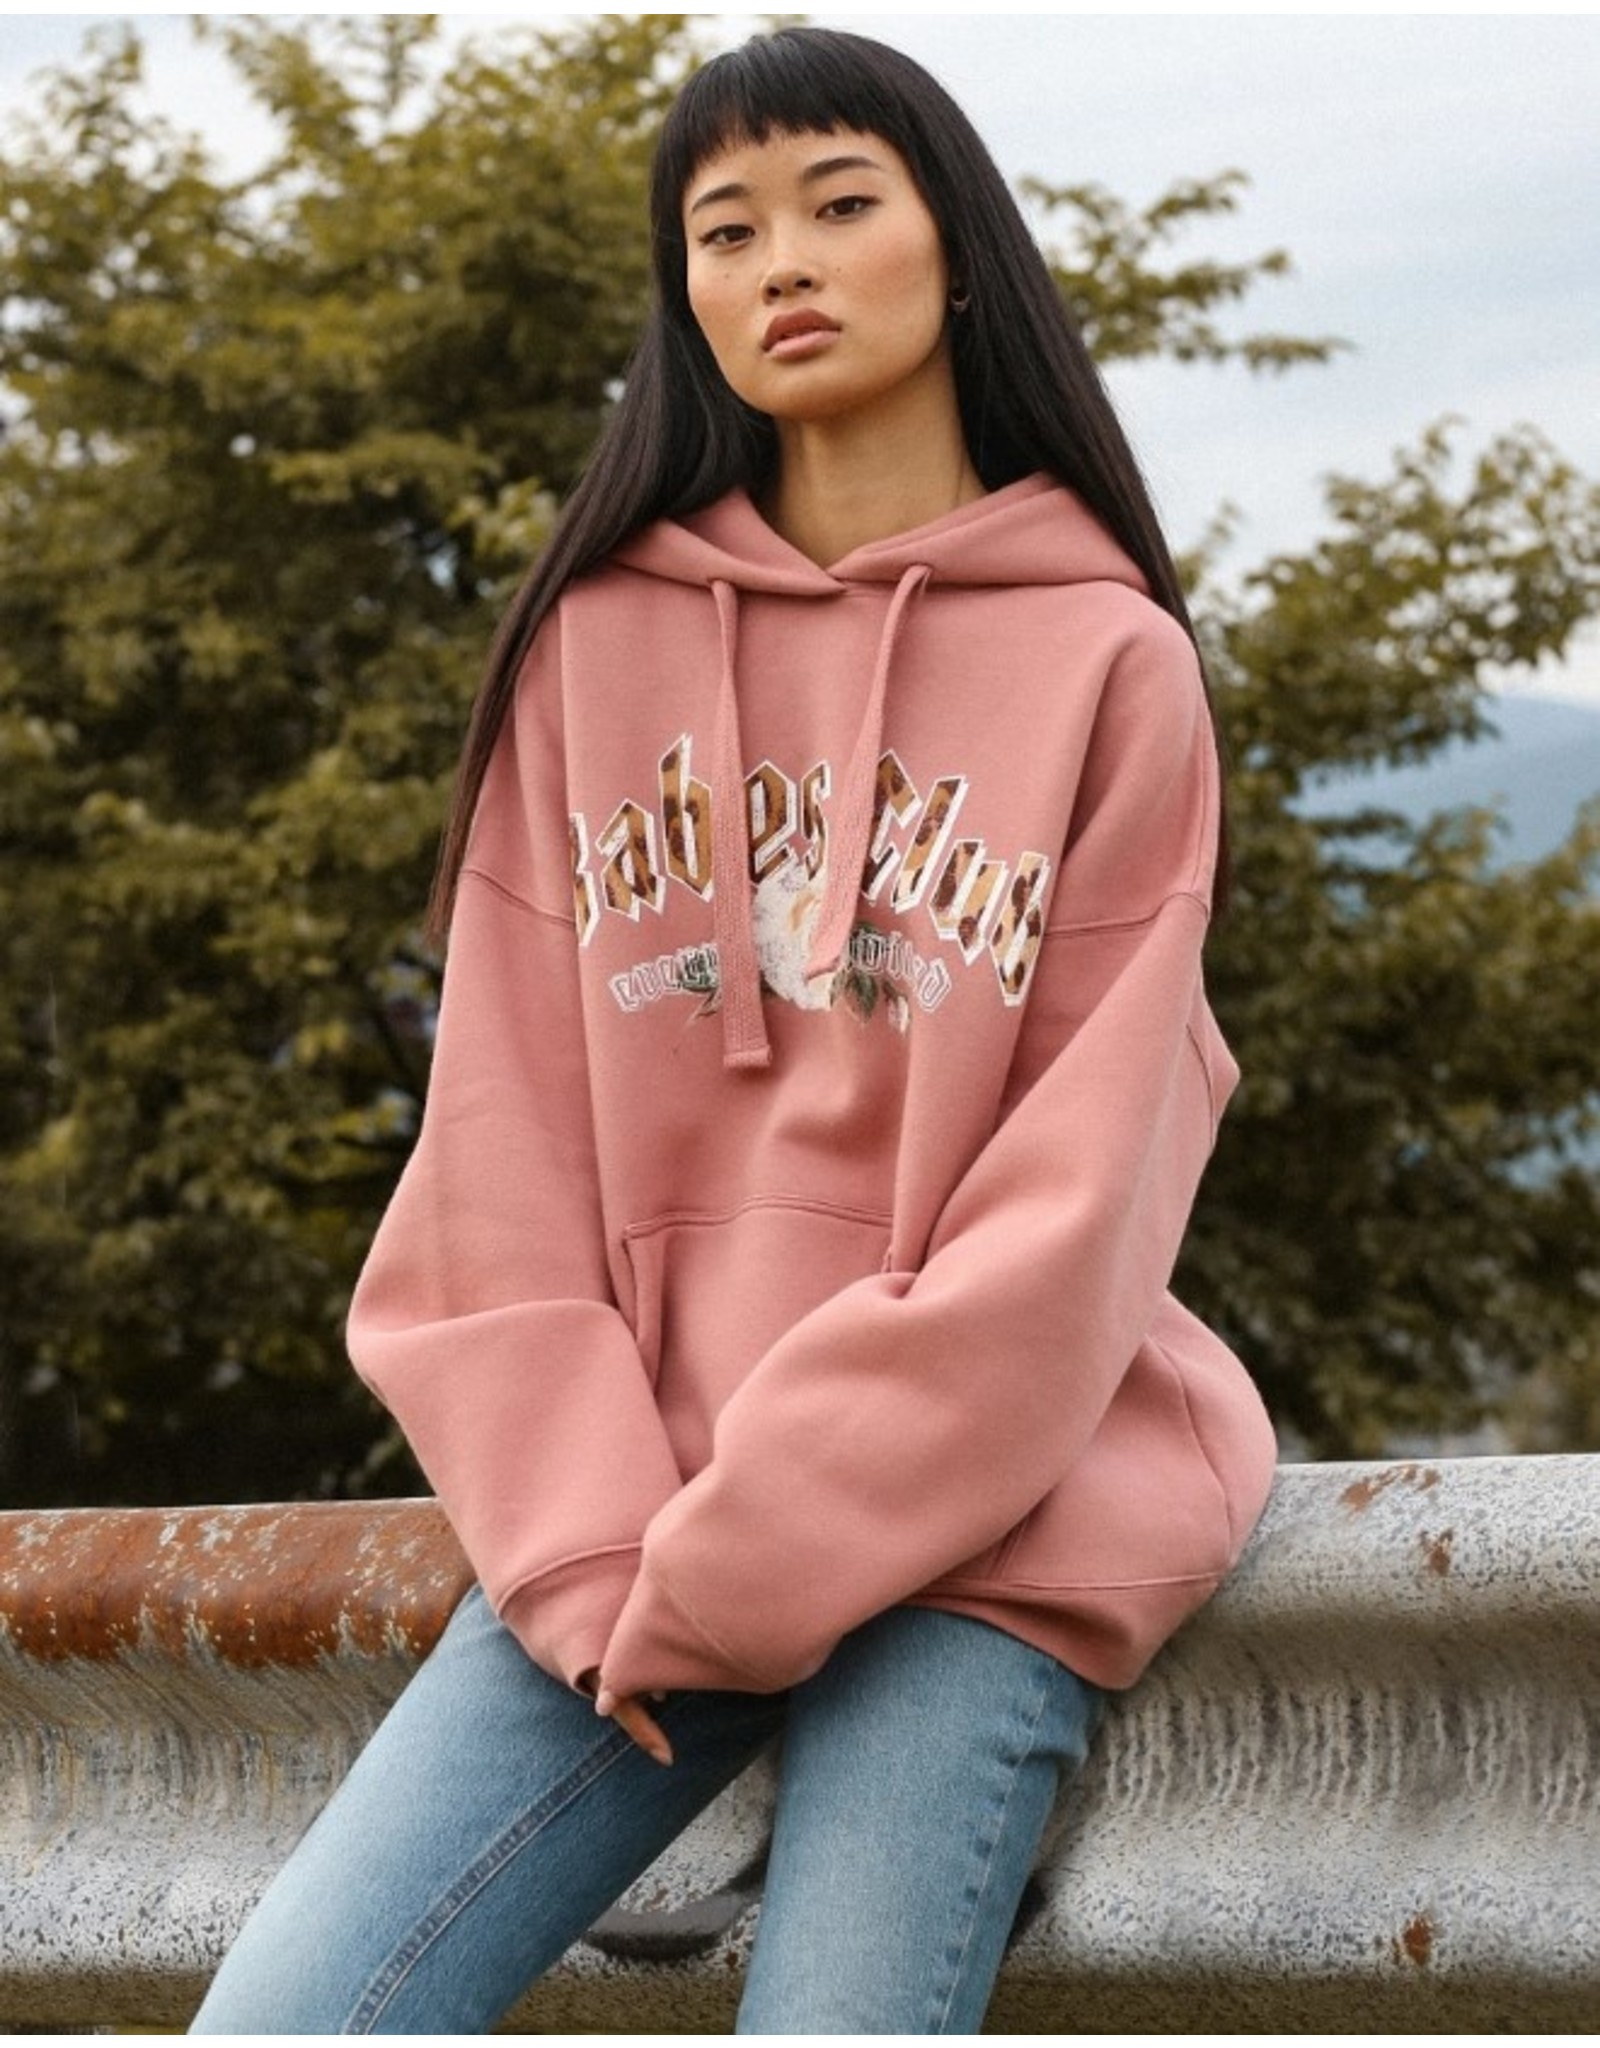 brunette the label Babes Club Big Sister Hoodie